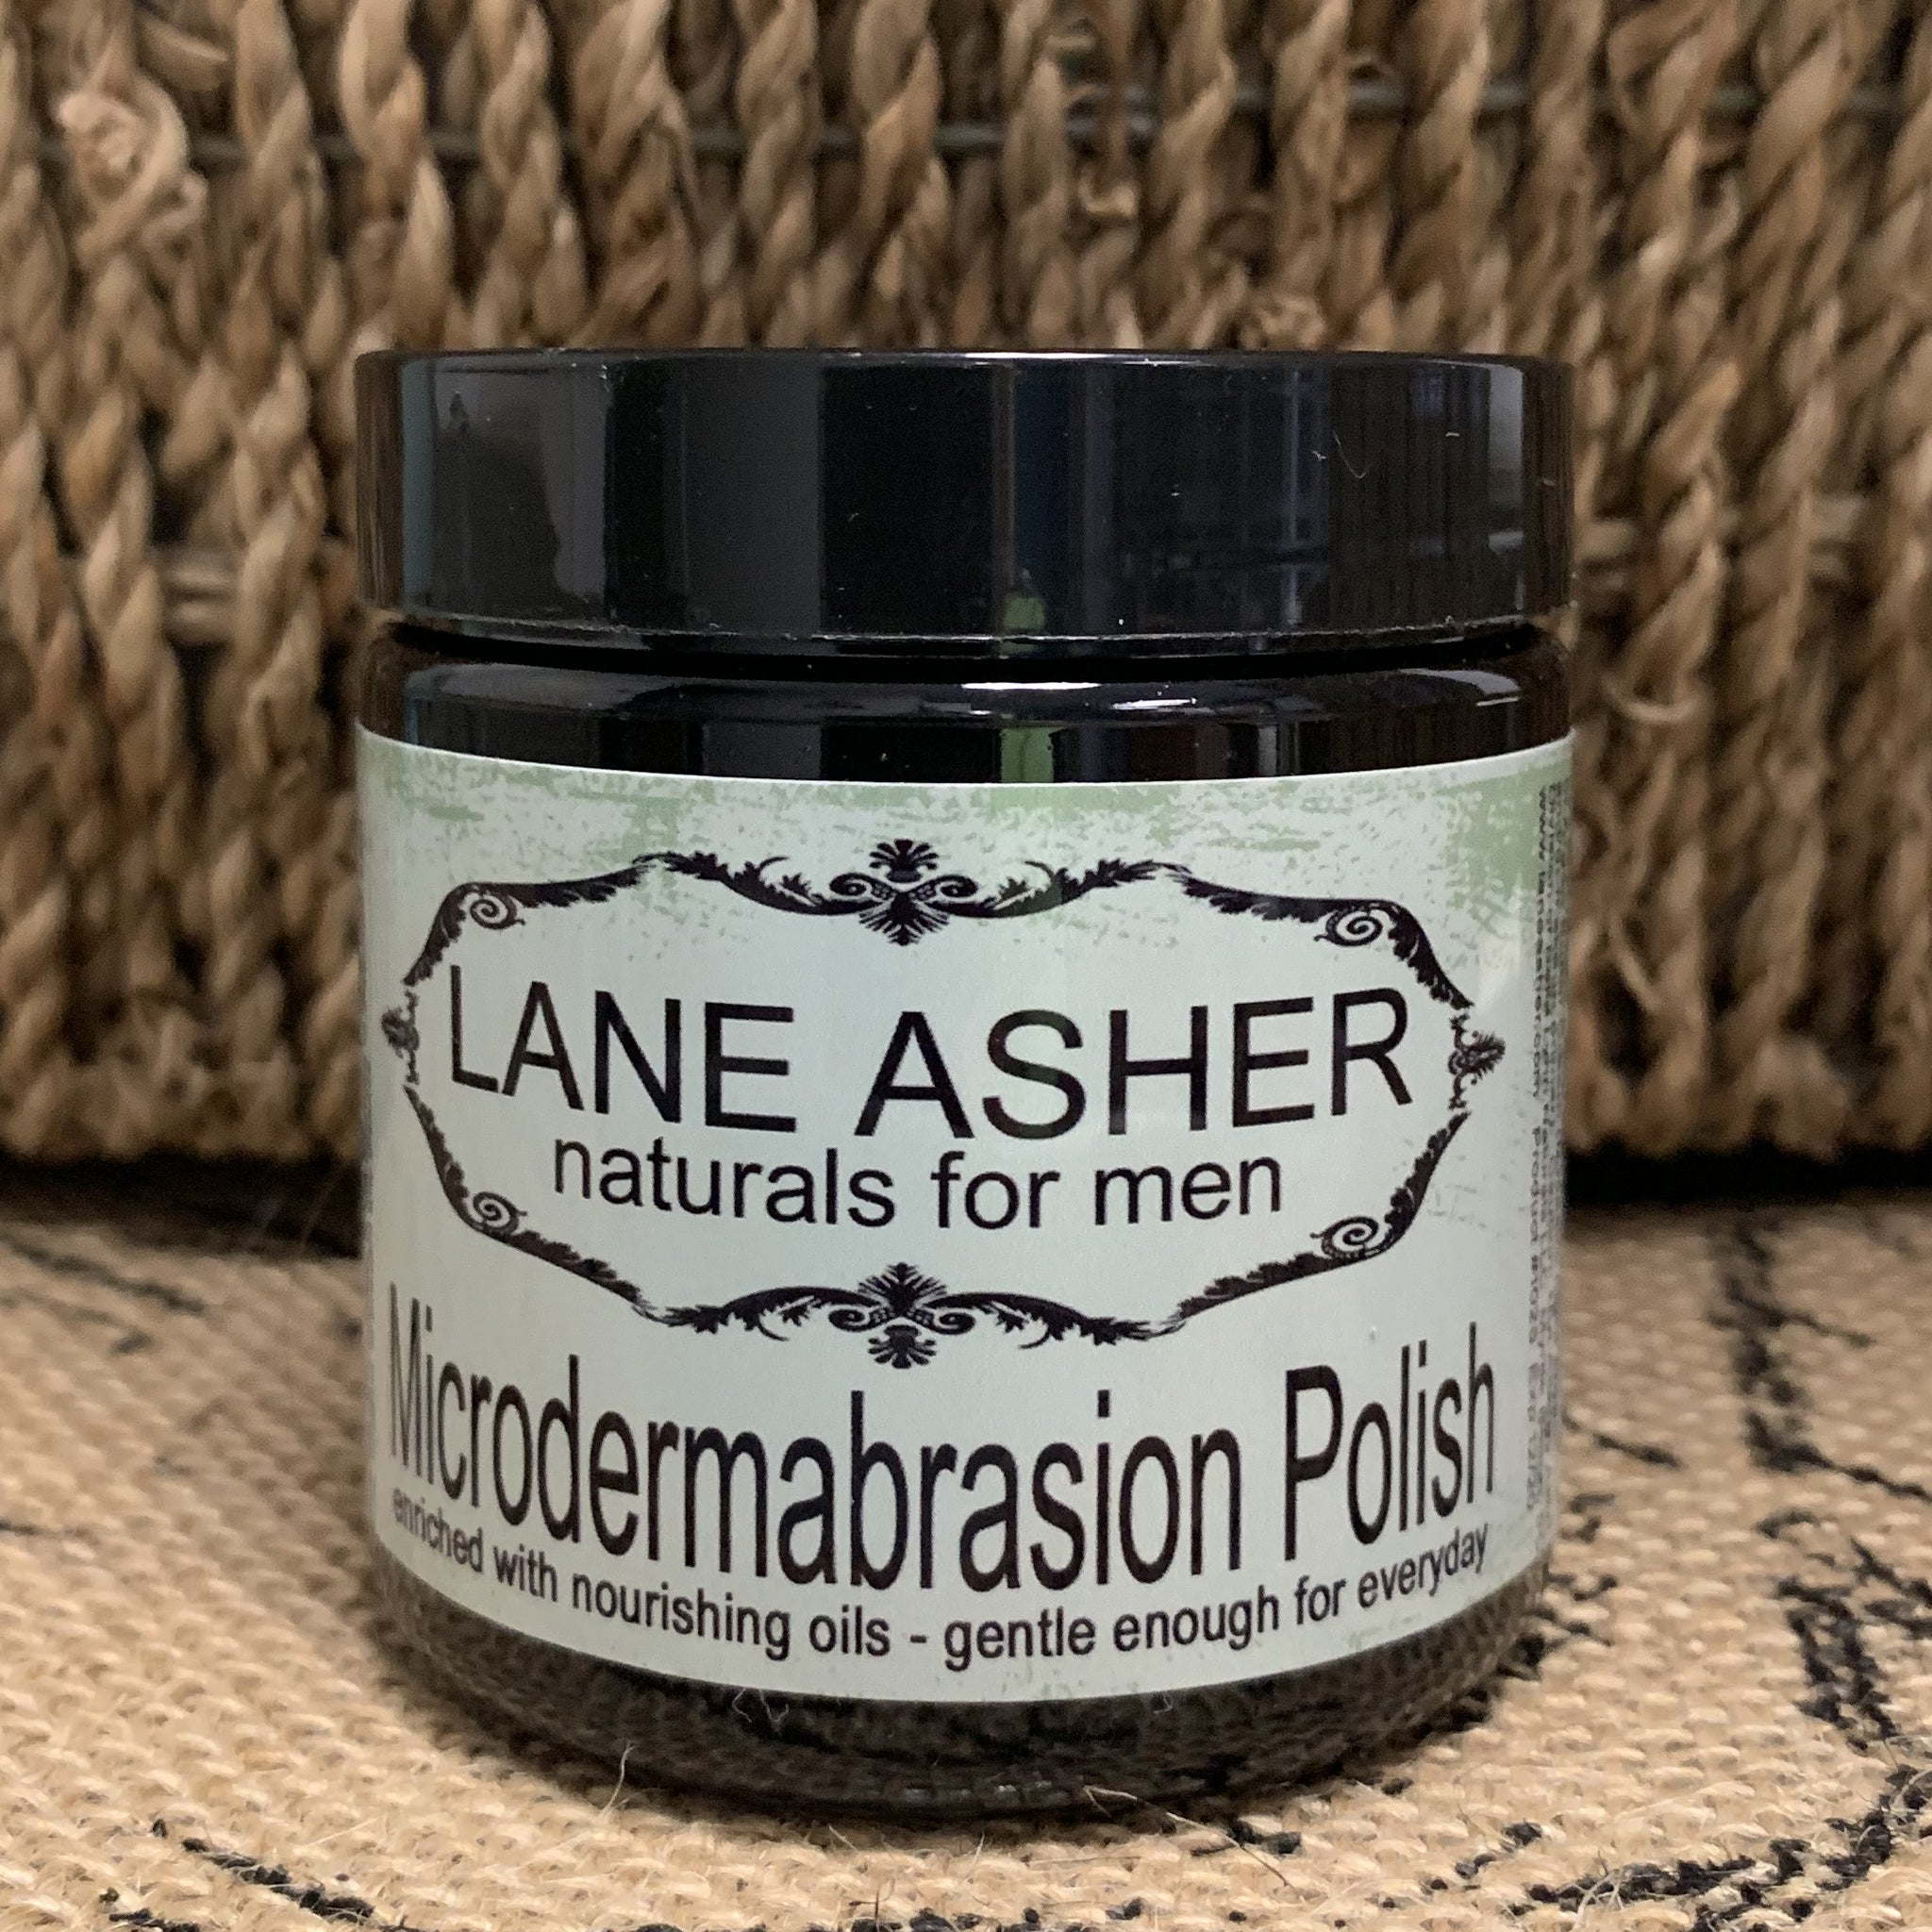 Men's Microdermabrasion Facial Polish - Bella Lynn Naturals®